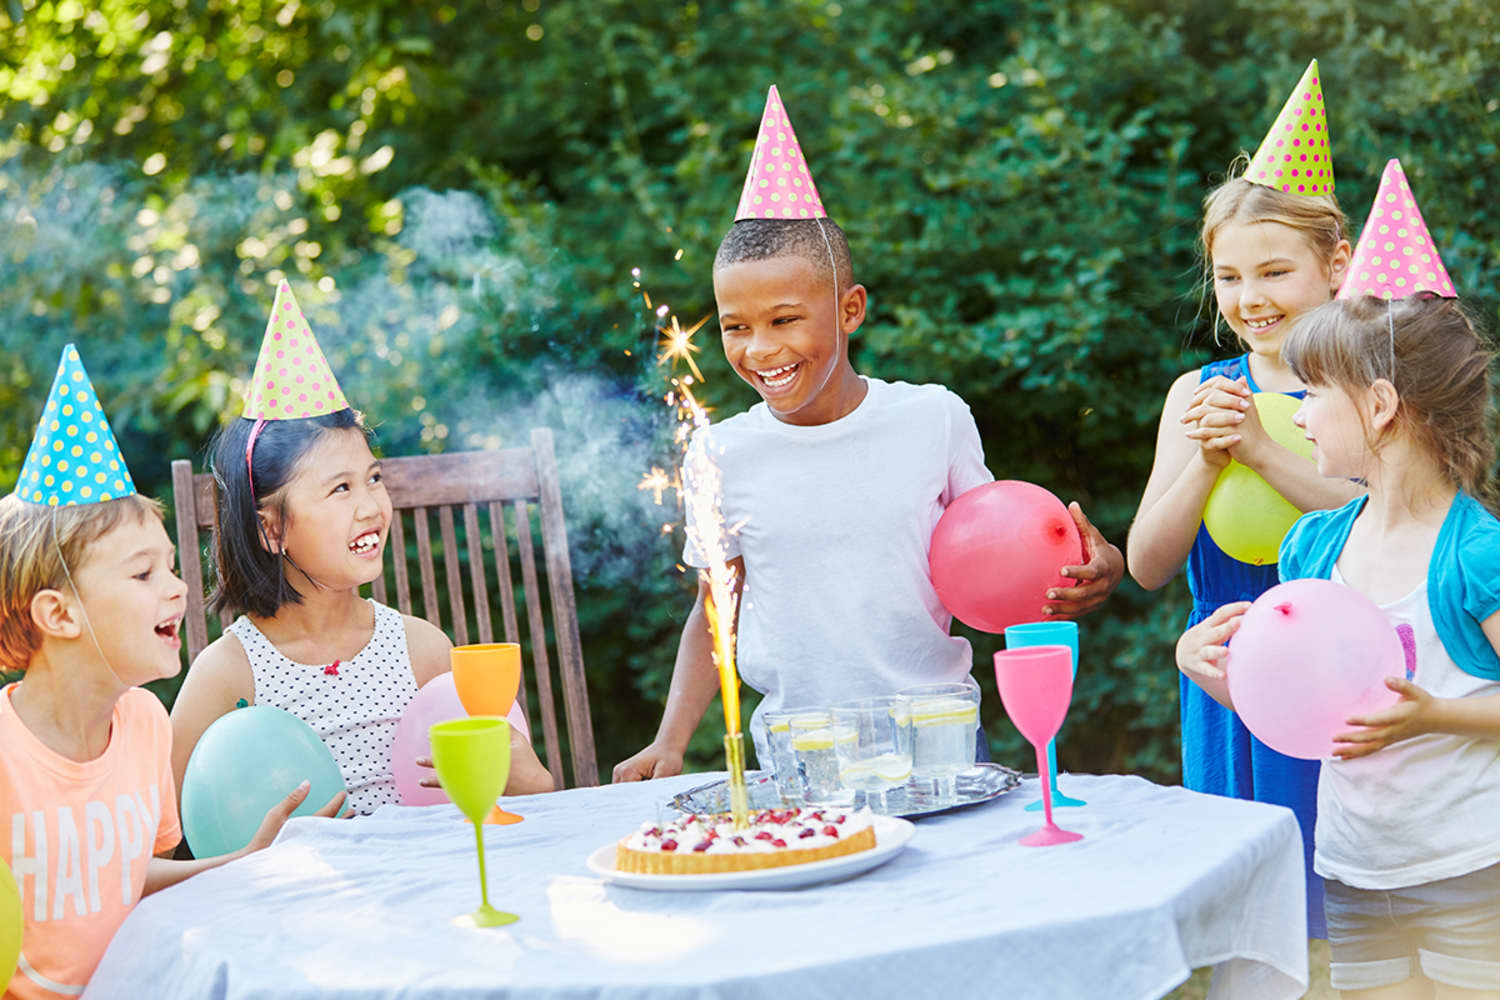 5 Easy and Inexpensive Ways to Incorporate Kids' Birthday Themes into a Party